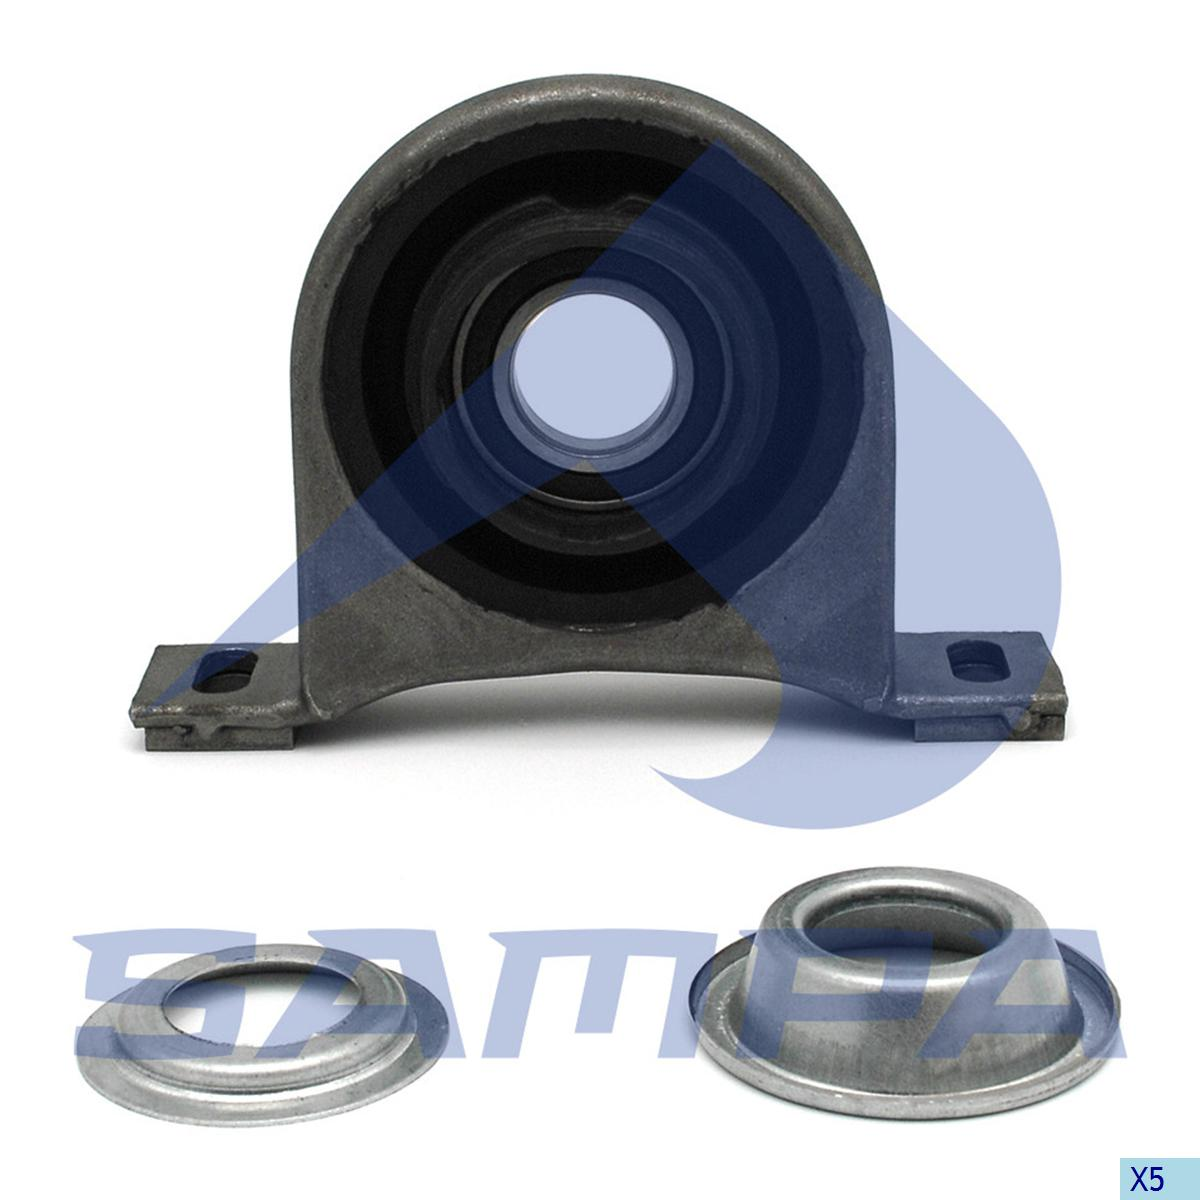 Propeller Shaft Bearing, Mercedes, Propeller Shaft